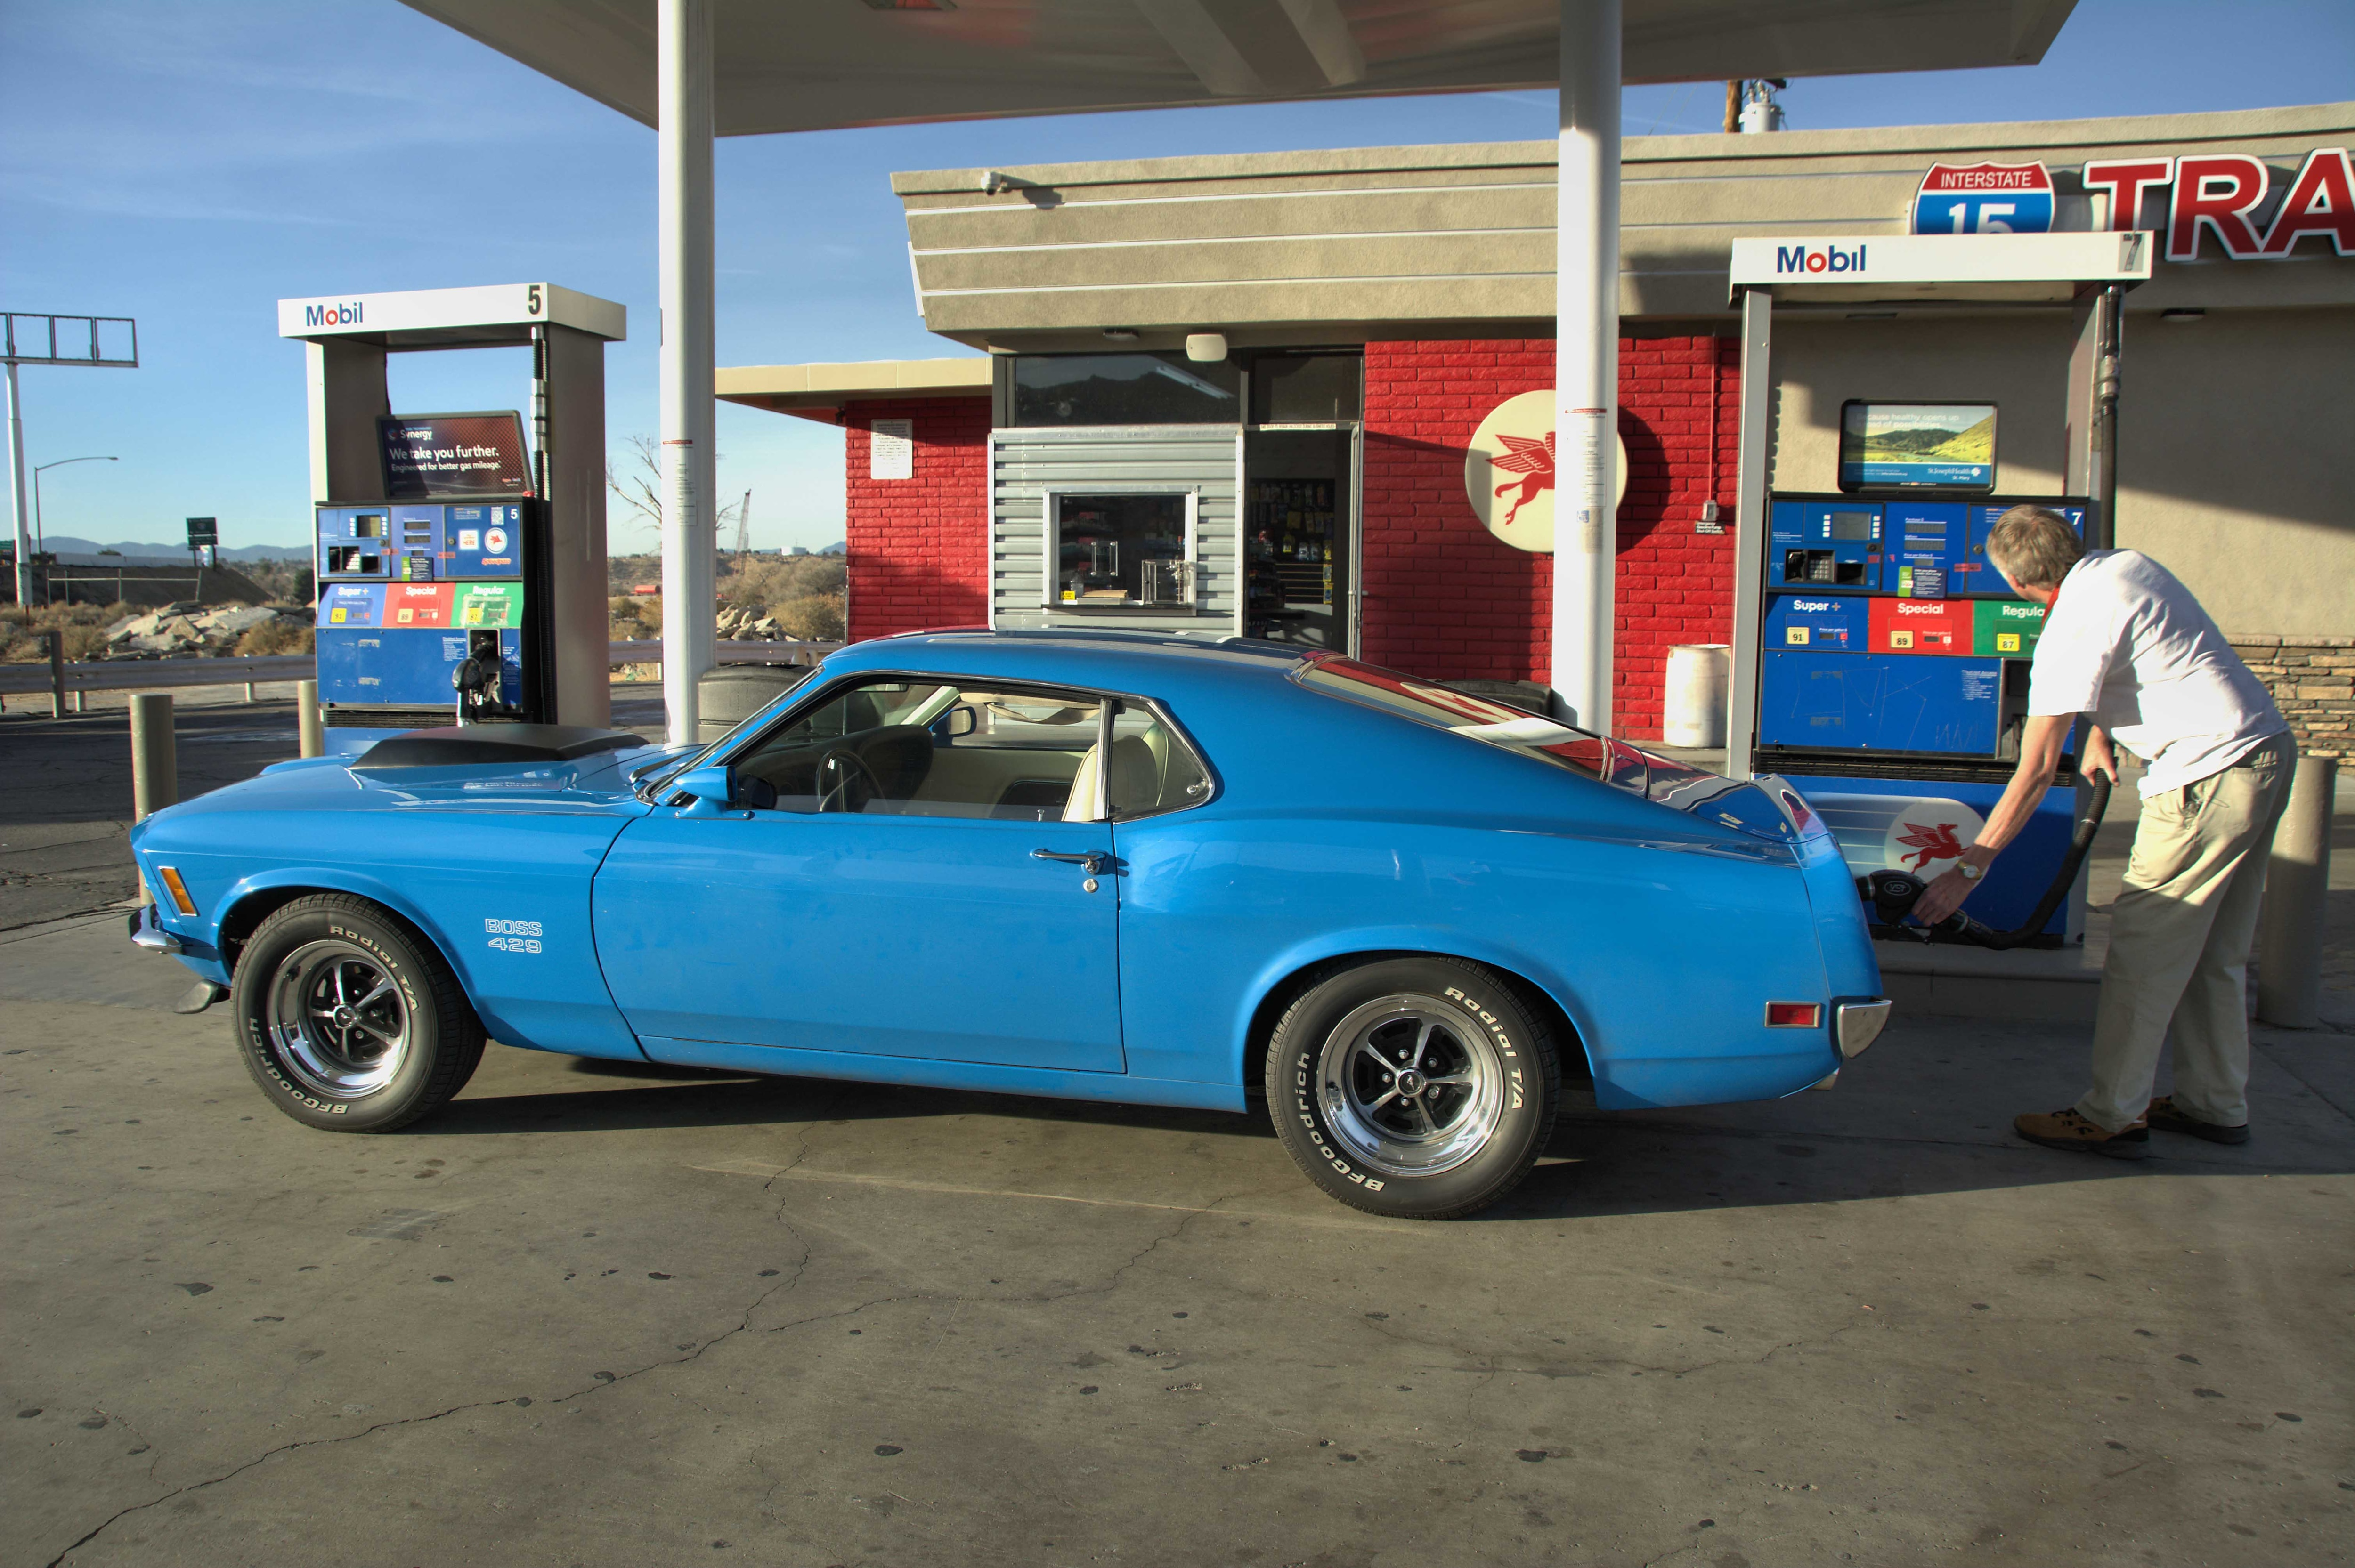 009 Goss 1970 Ford Mustang Boss 429 Drive Gas Stop Victorville